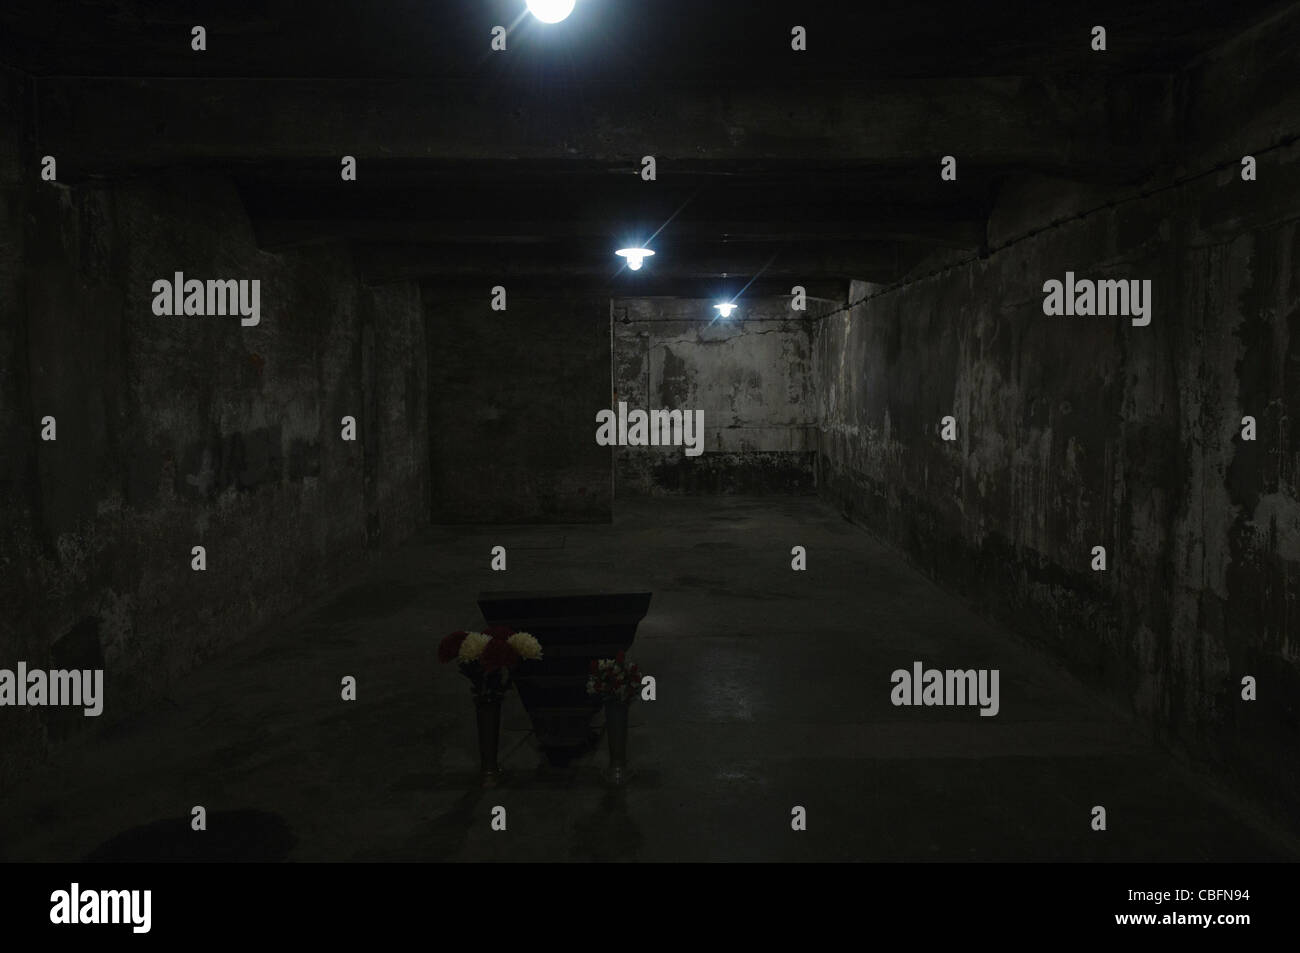 Inside the gas chamber, Auschwitz concentration camp, which could exterminate 700 people at a time - Stock Image